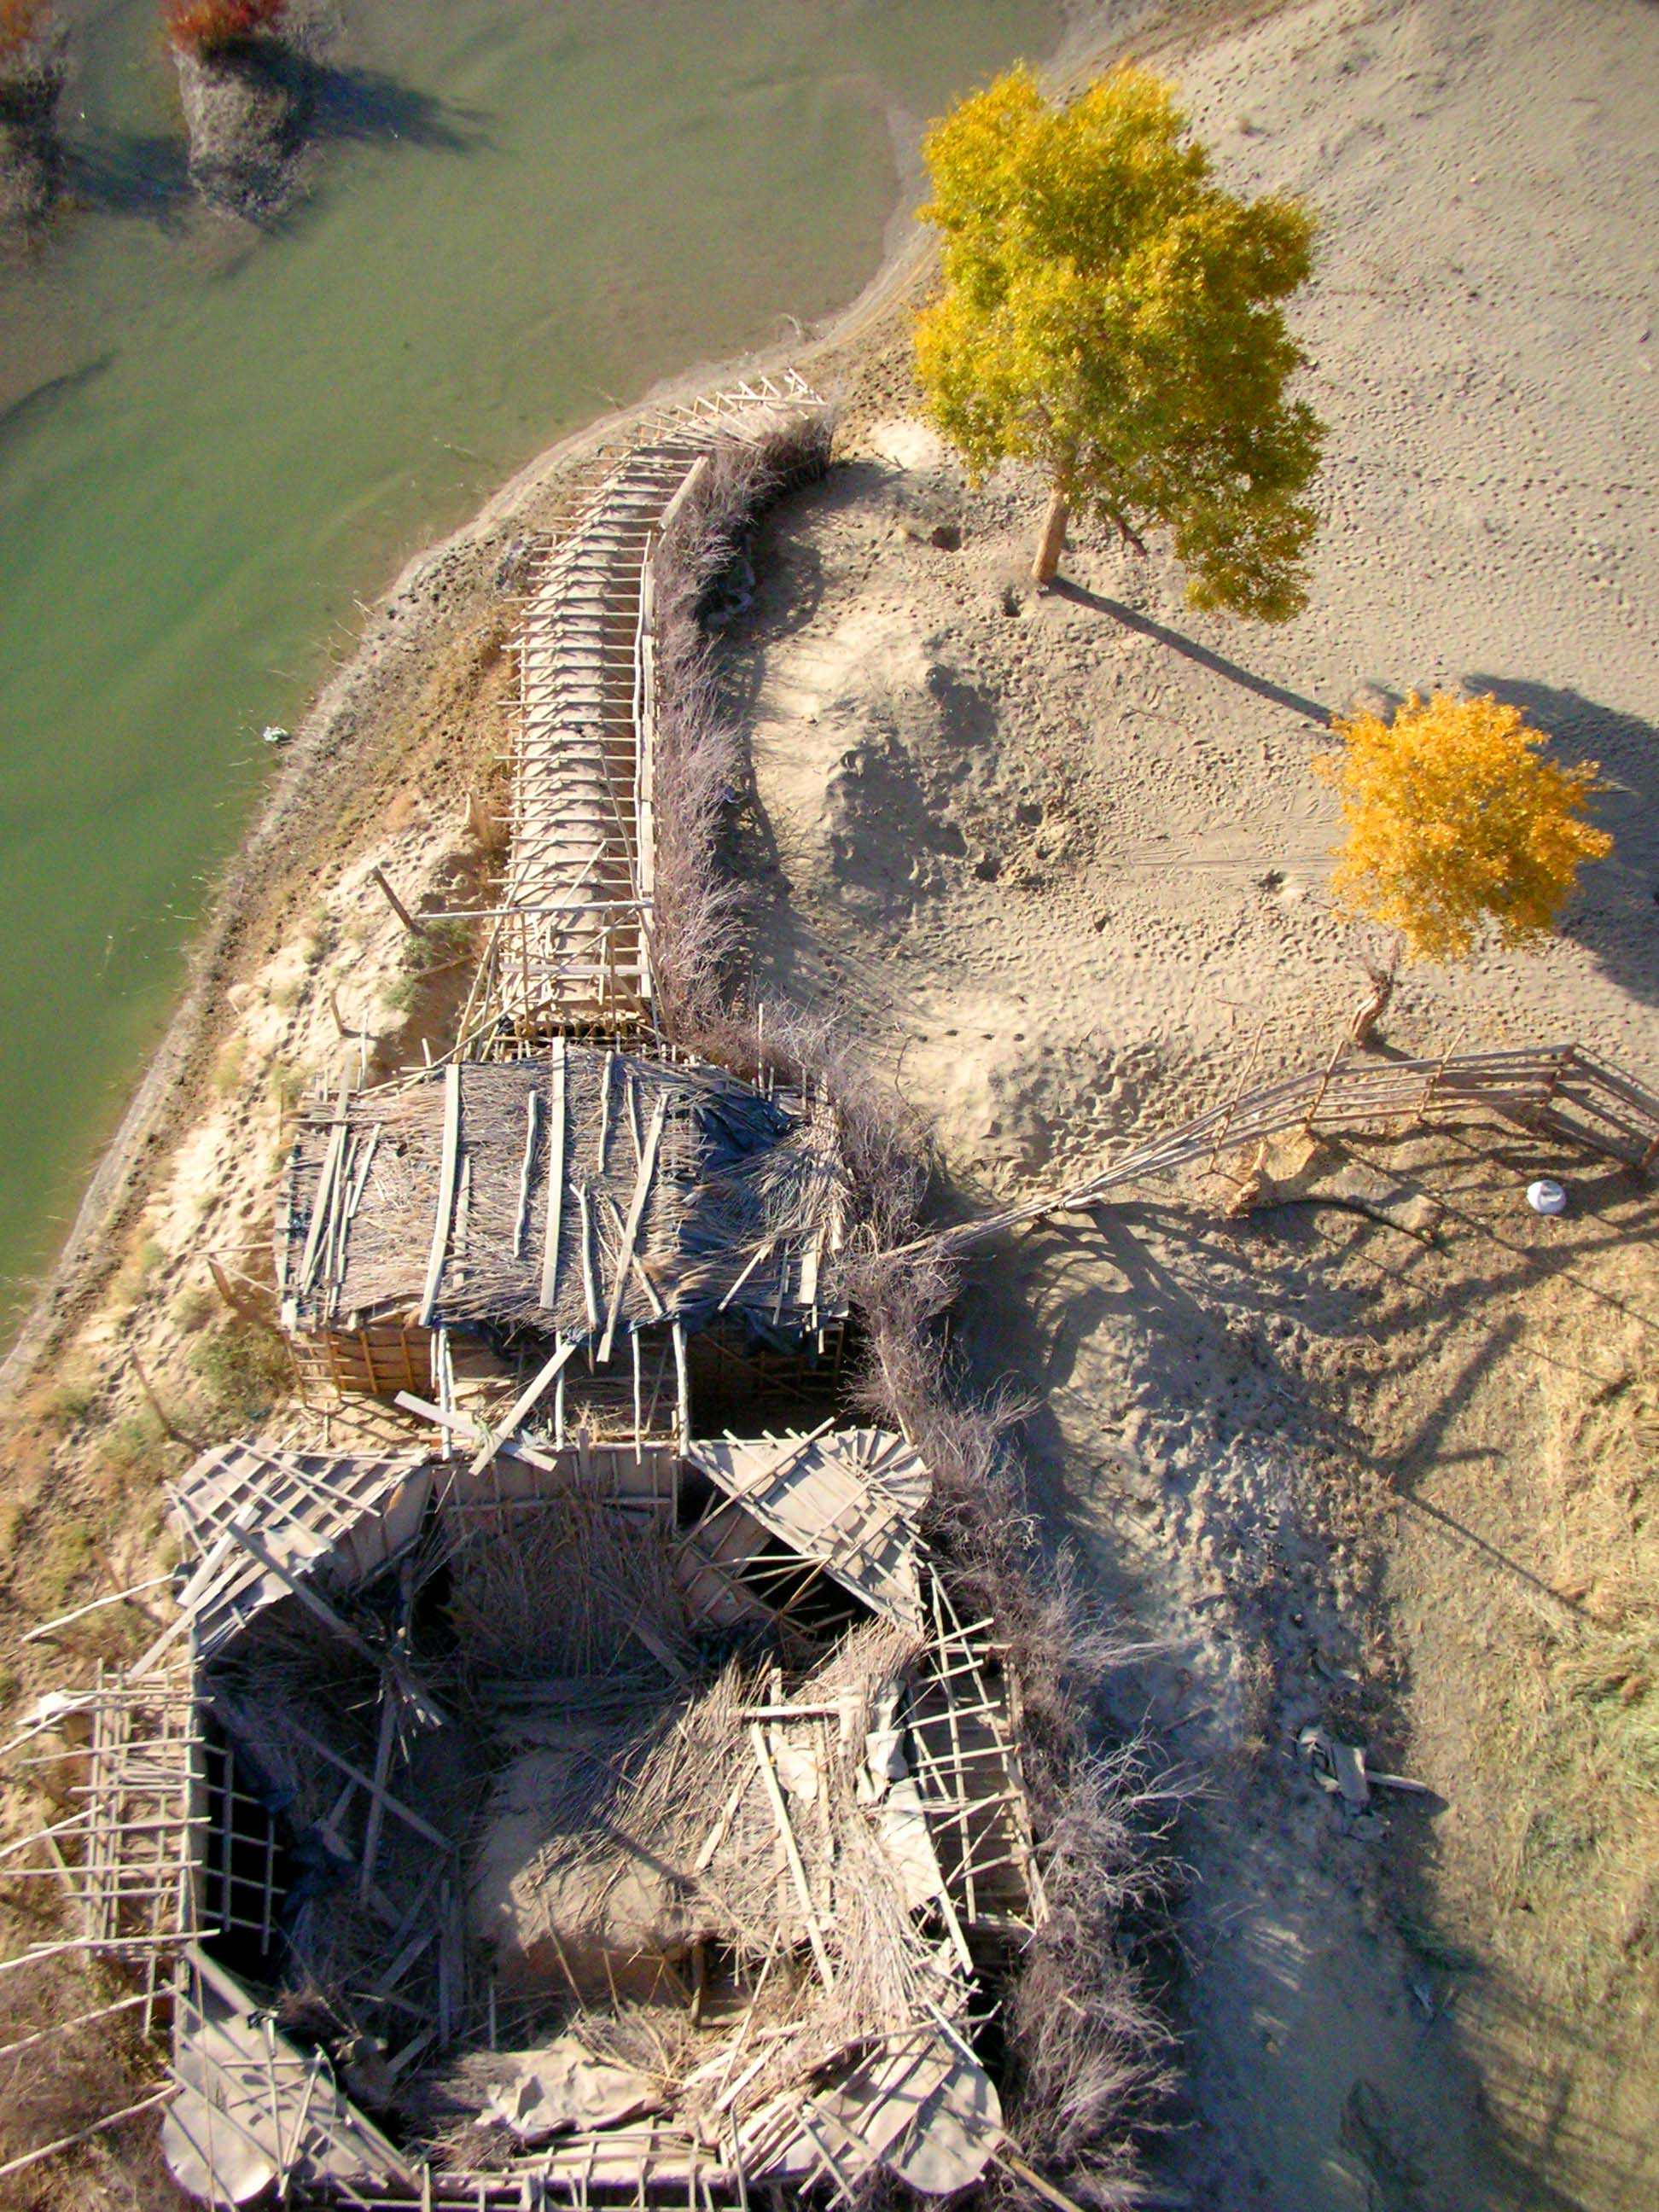 Looking straight down from the rickety observation tower at Lo Bu Ren Chun Zai, along the Tarim River.